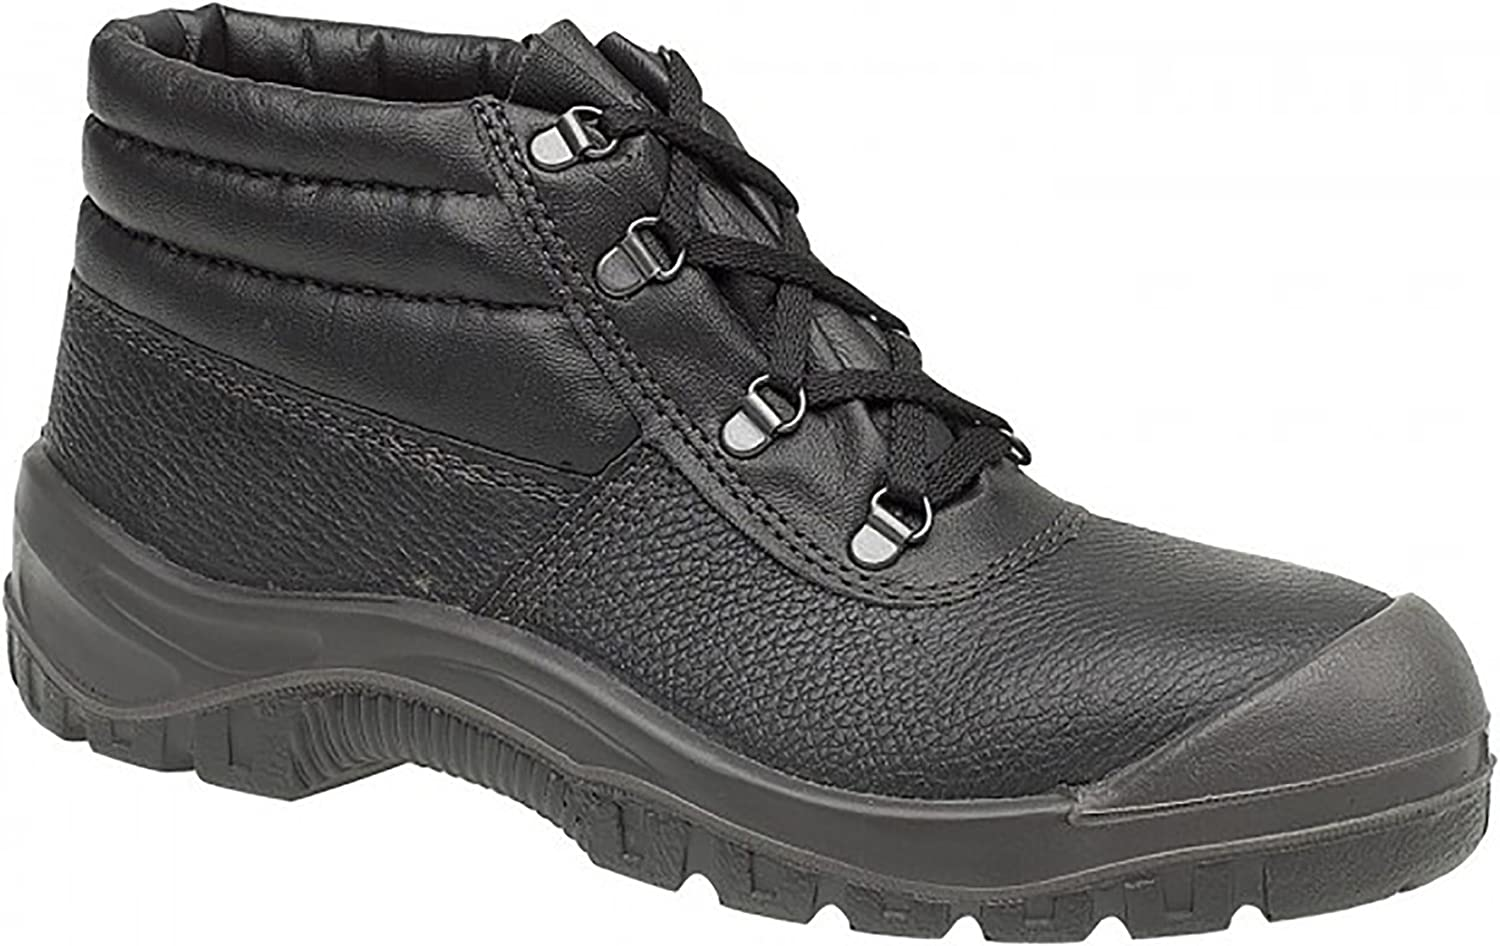 Centek FS83 Safety Boot   Womens Ladies Boots (8 US) (Black)